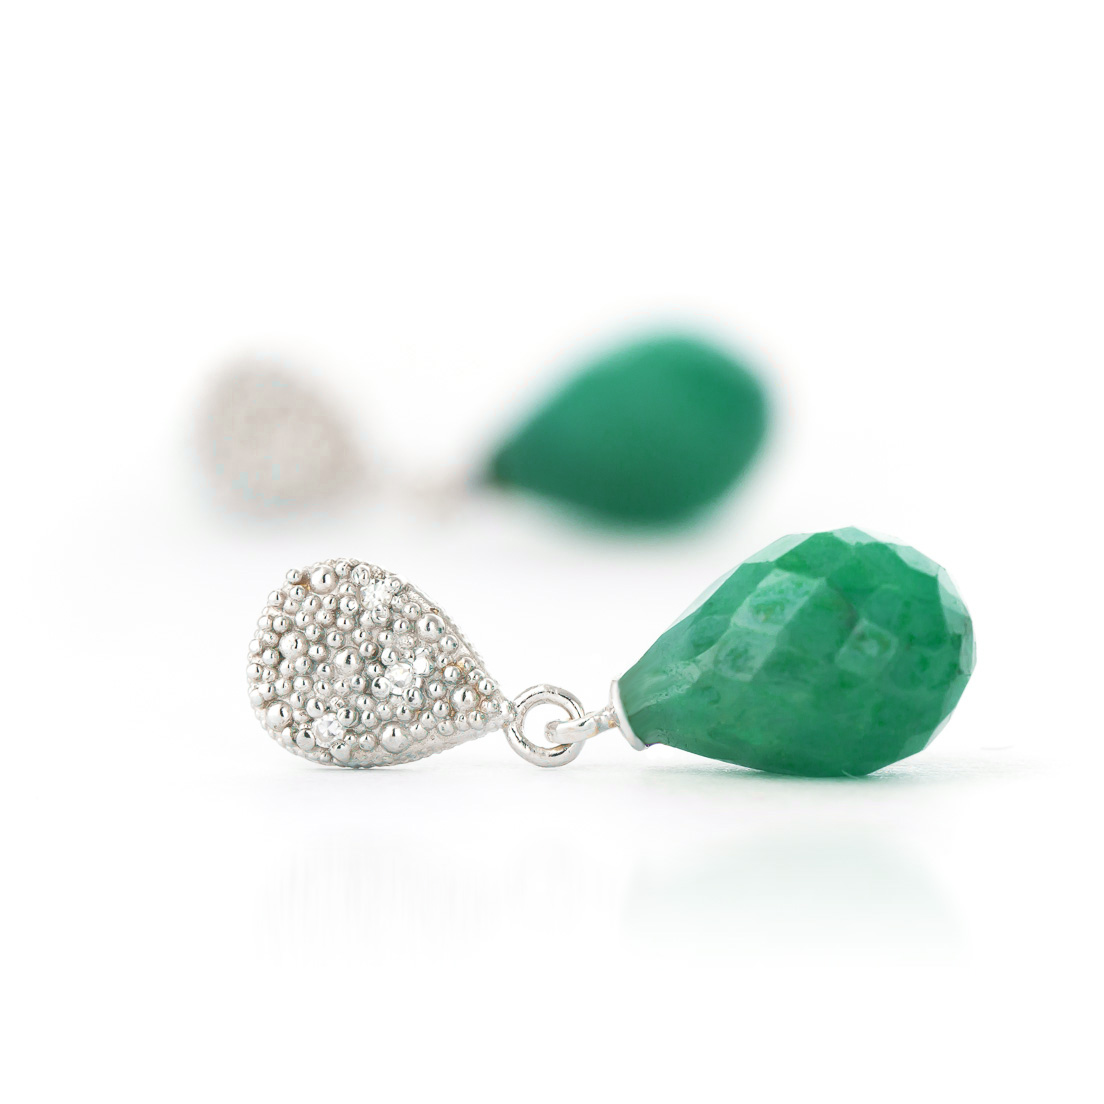 Emerald and Diamond Droplet Earrings 6.6ctw in 9ct White Gold